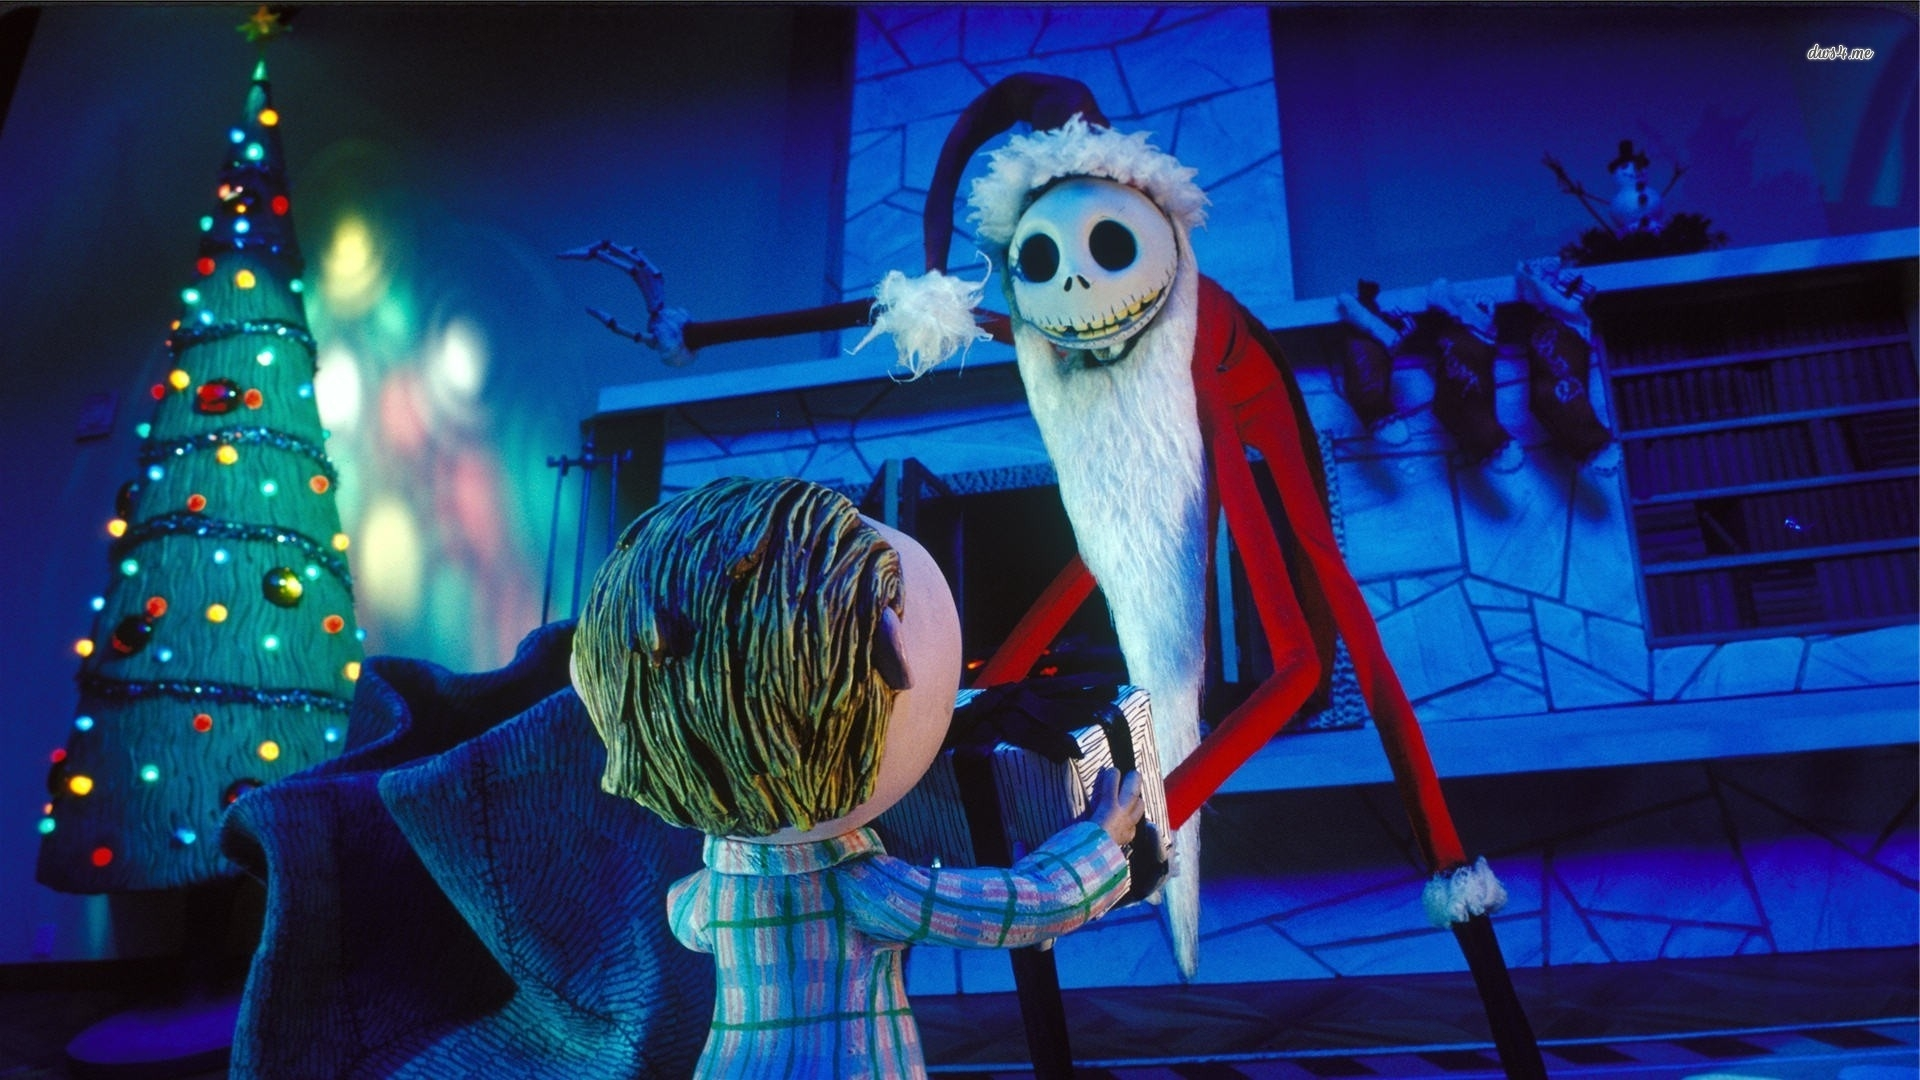 10 New Nightmare Before Christmas Christmas Wallpaper FULL HD 1920 ...